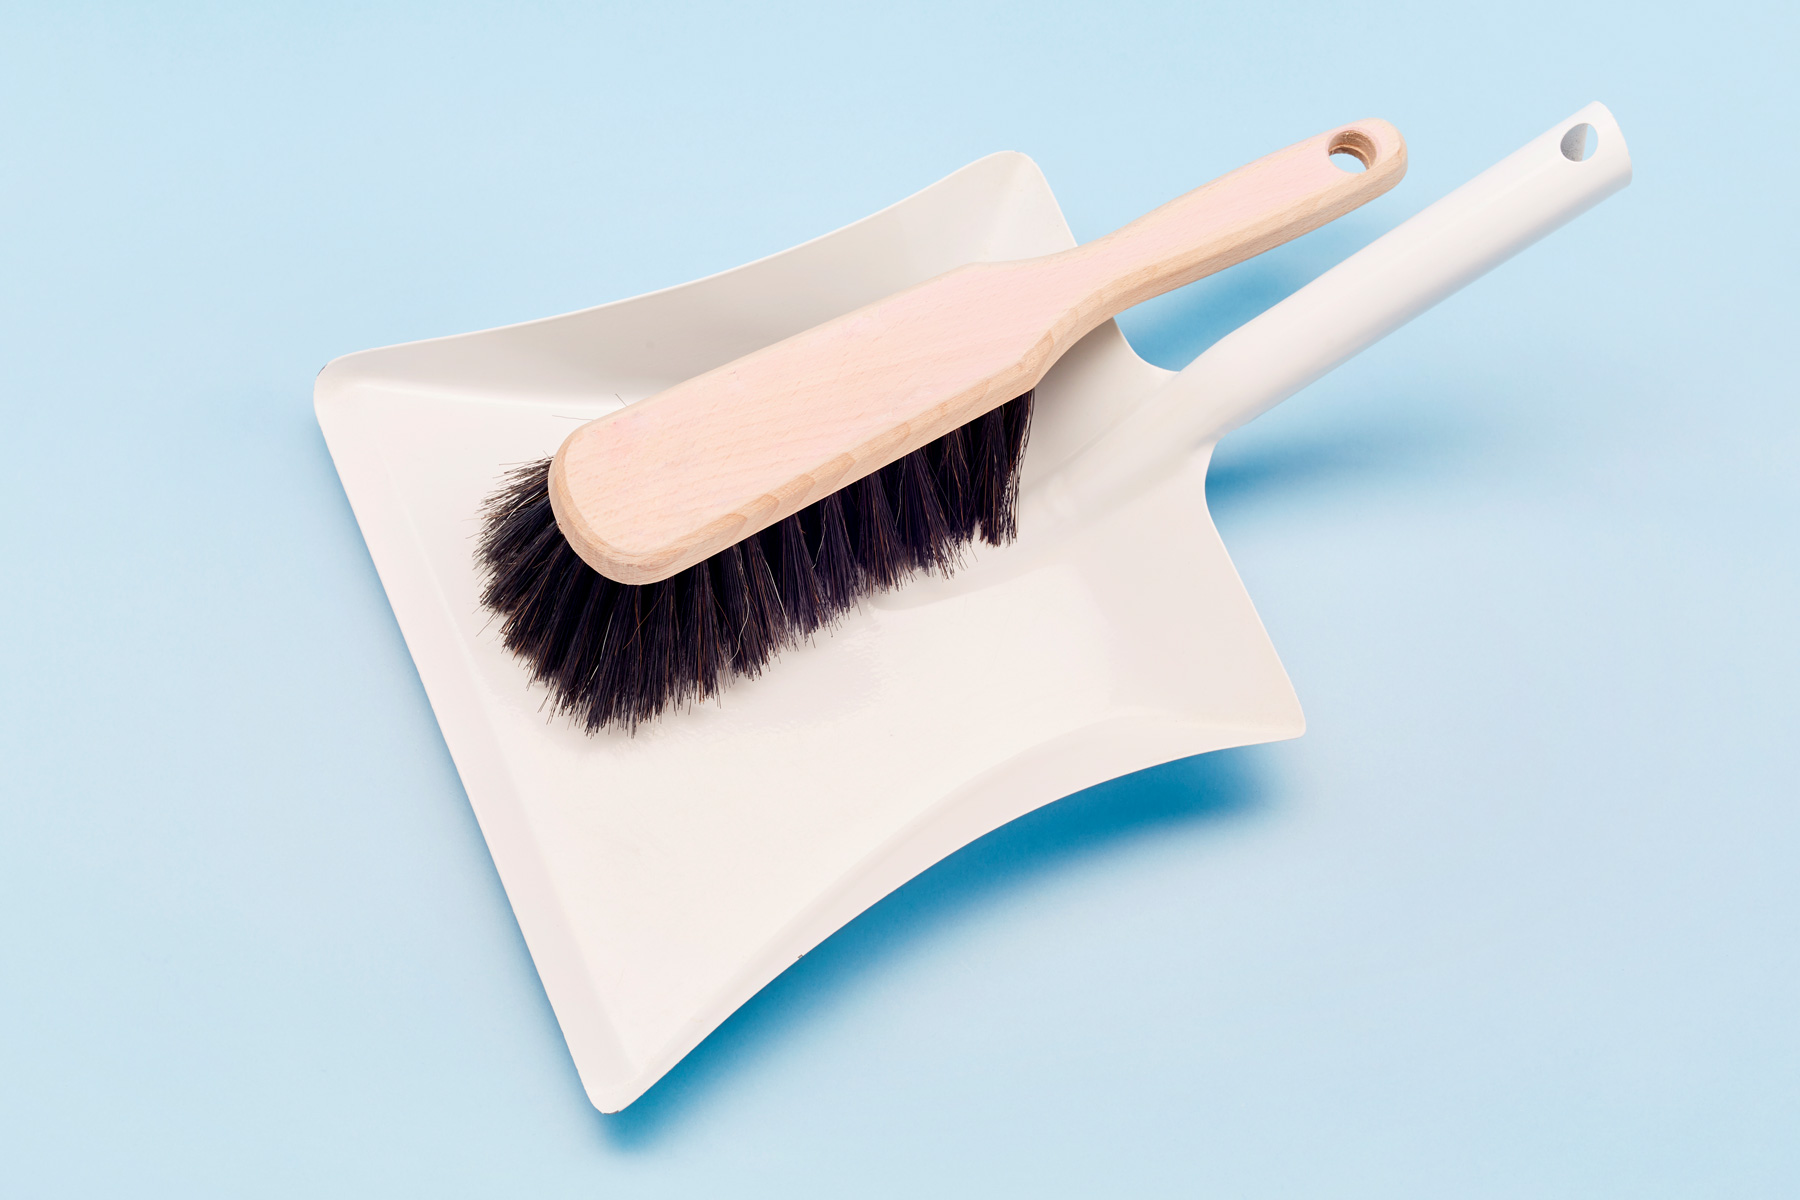 White dust pan and broom on a light blue background